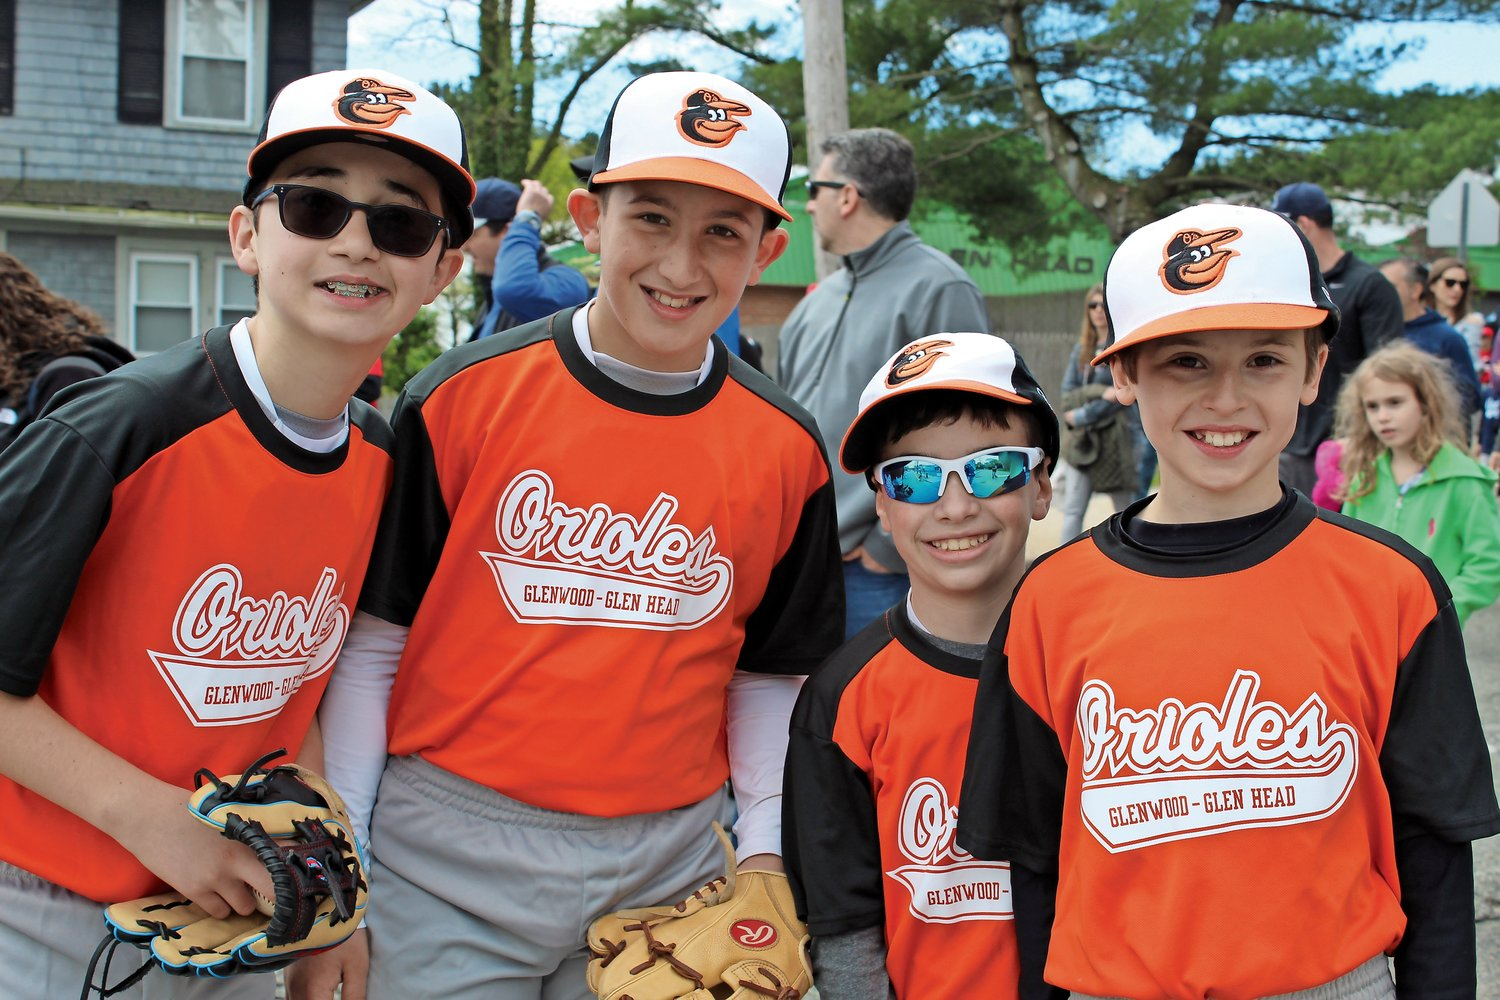 Along the parade route, some of the Orioles stopped for a photo, including, from left, Greg Luzhansky, Vincenzo Sicuranza, Jordan Eisbruck and Jeffrey Bartlett.